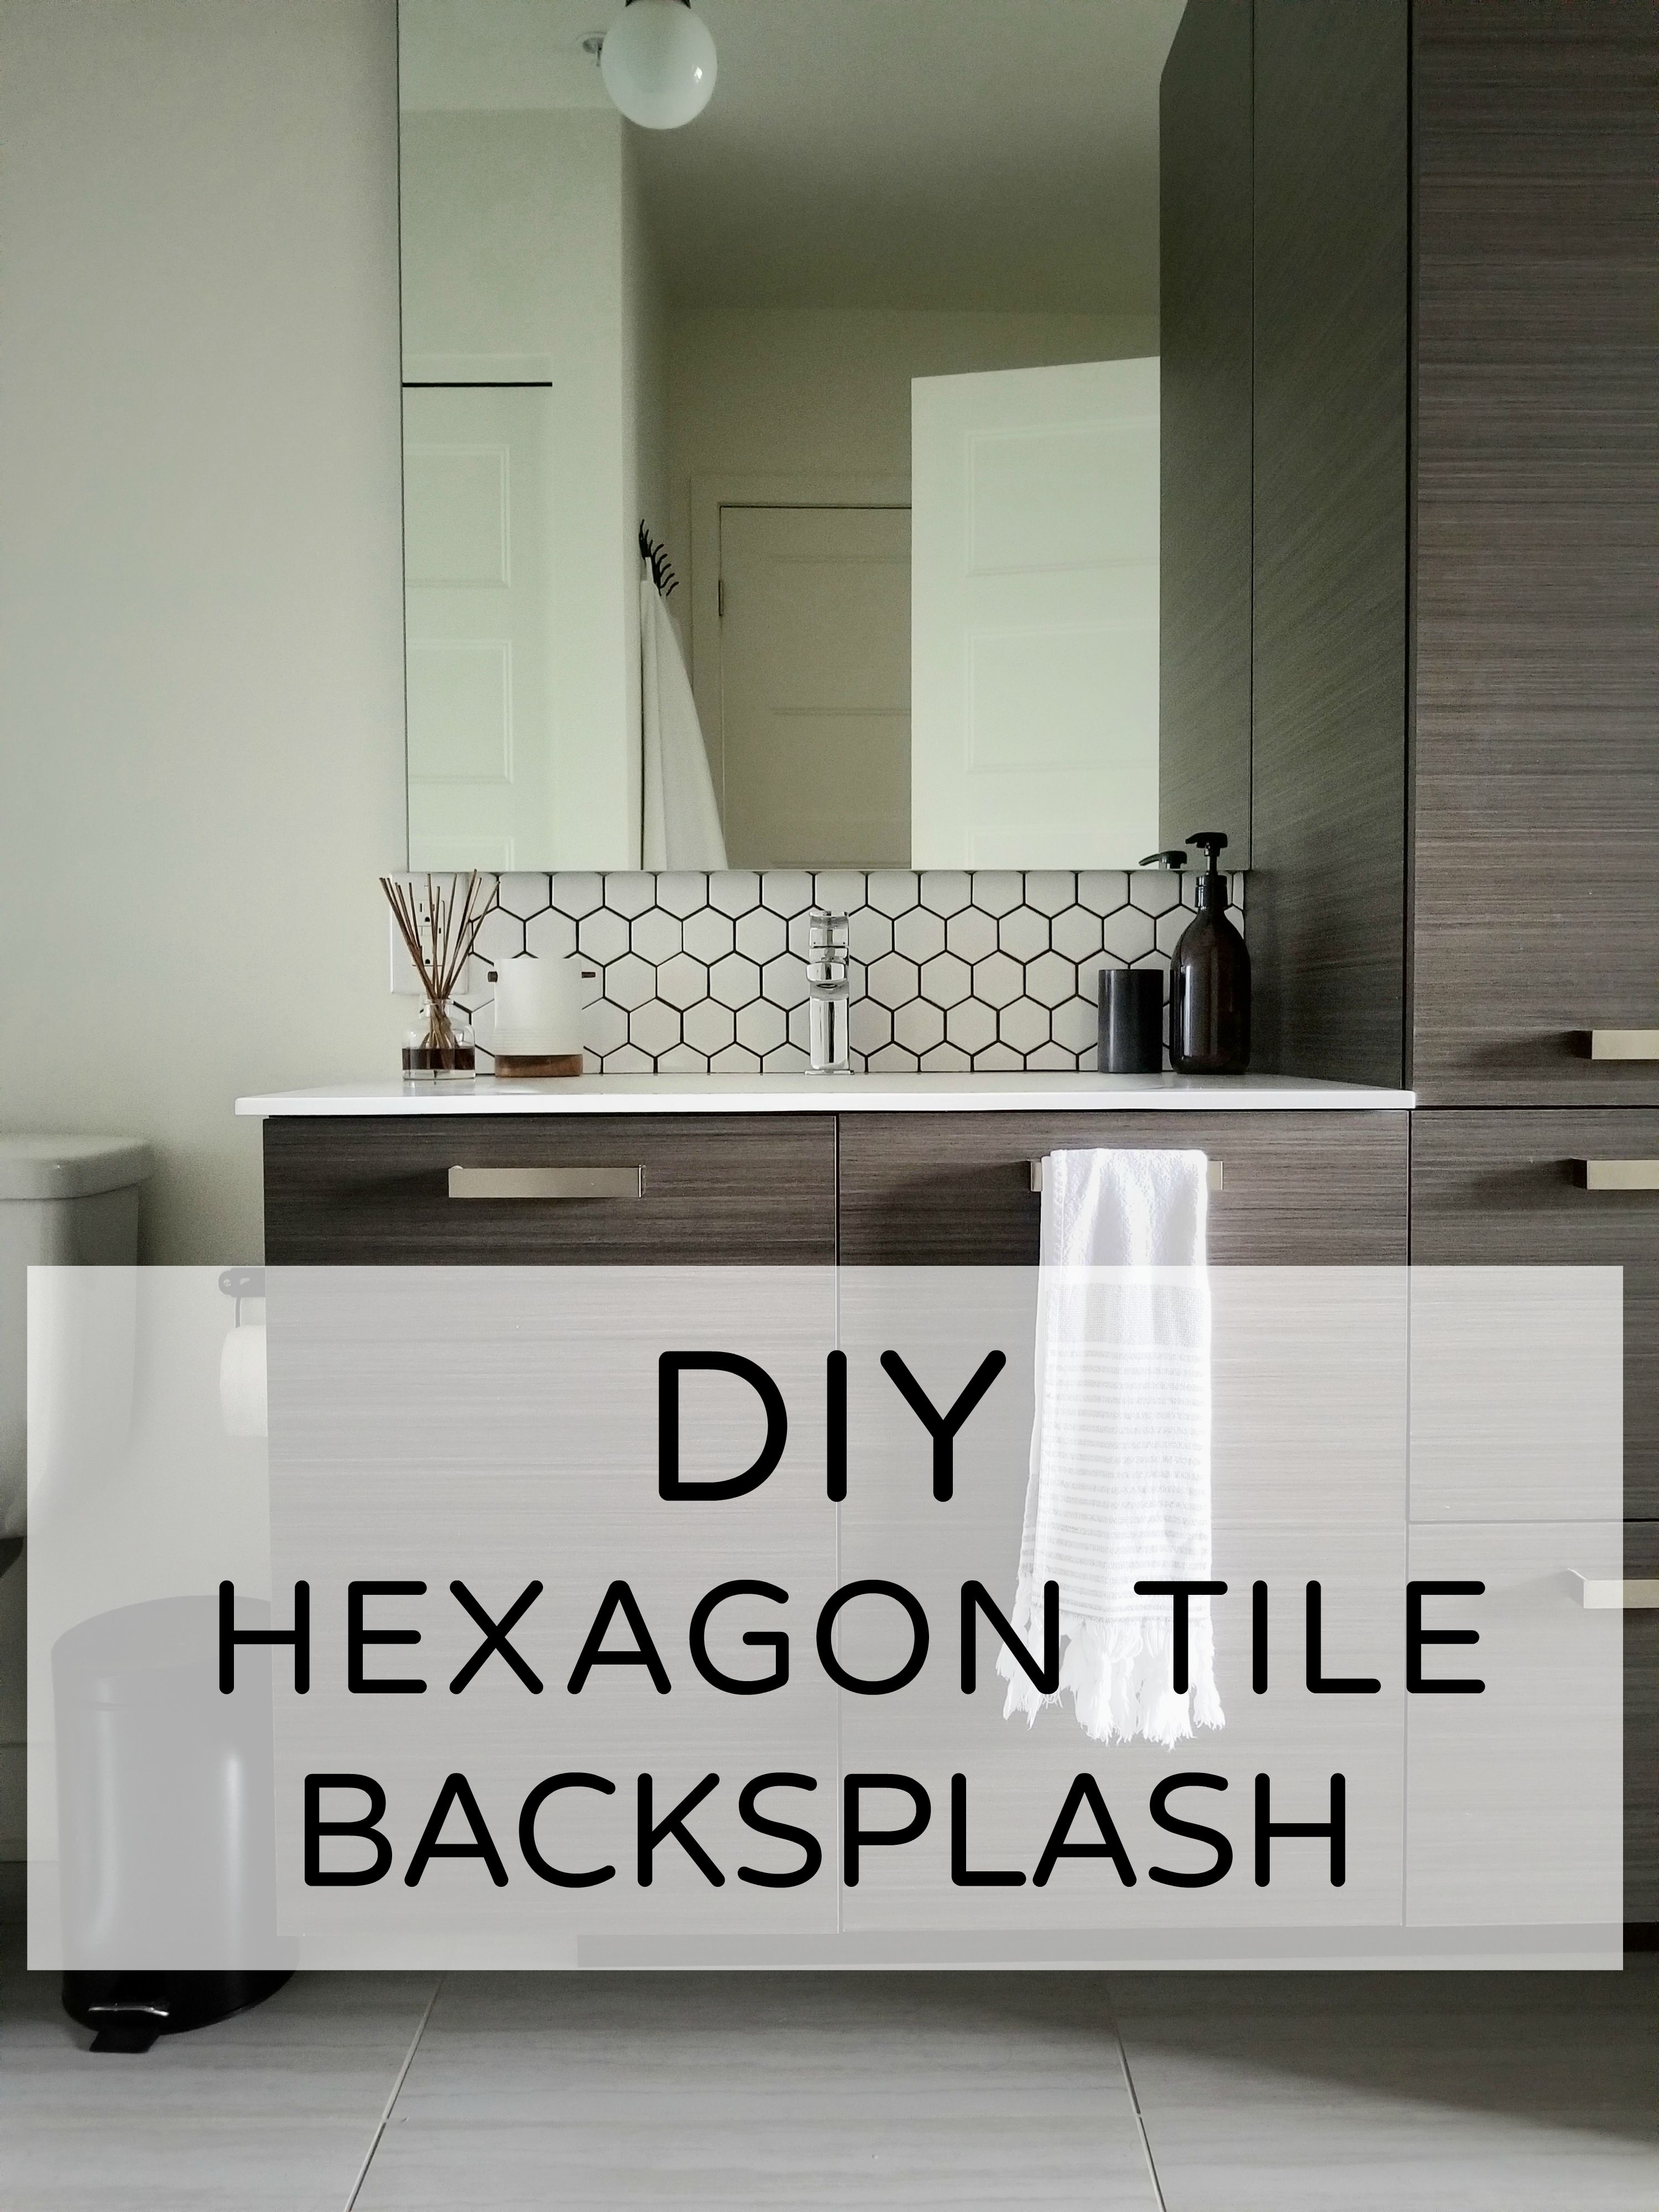 Hexagon Tile Backsplash How to Install Hex Tiles with Adhesive Tile